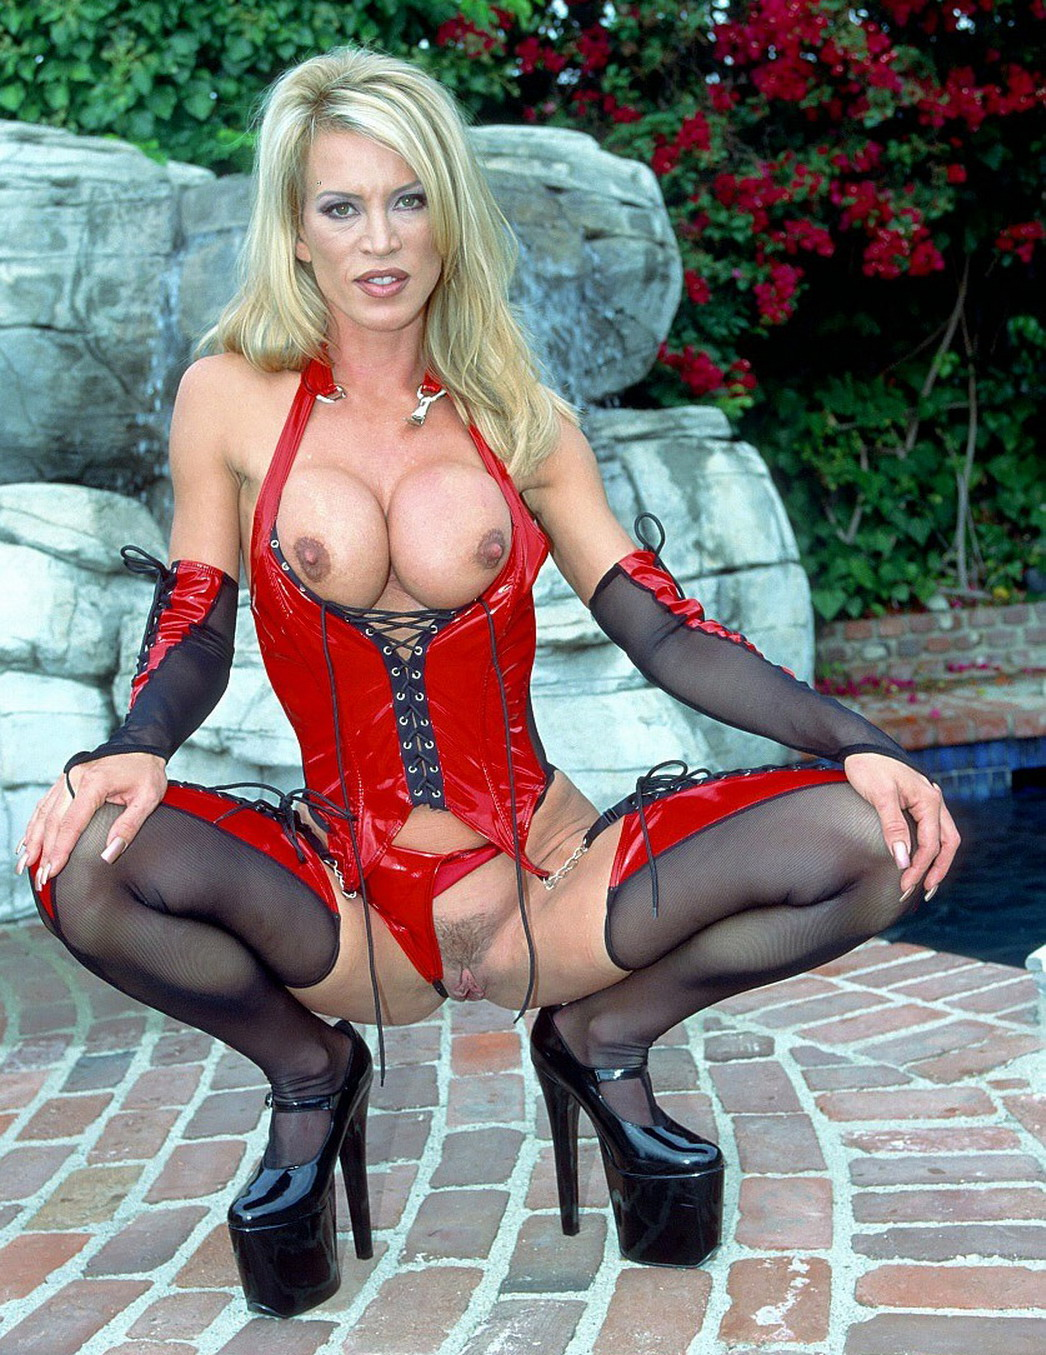 Much regret, Amber lynn movies pantyhose consider